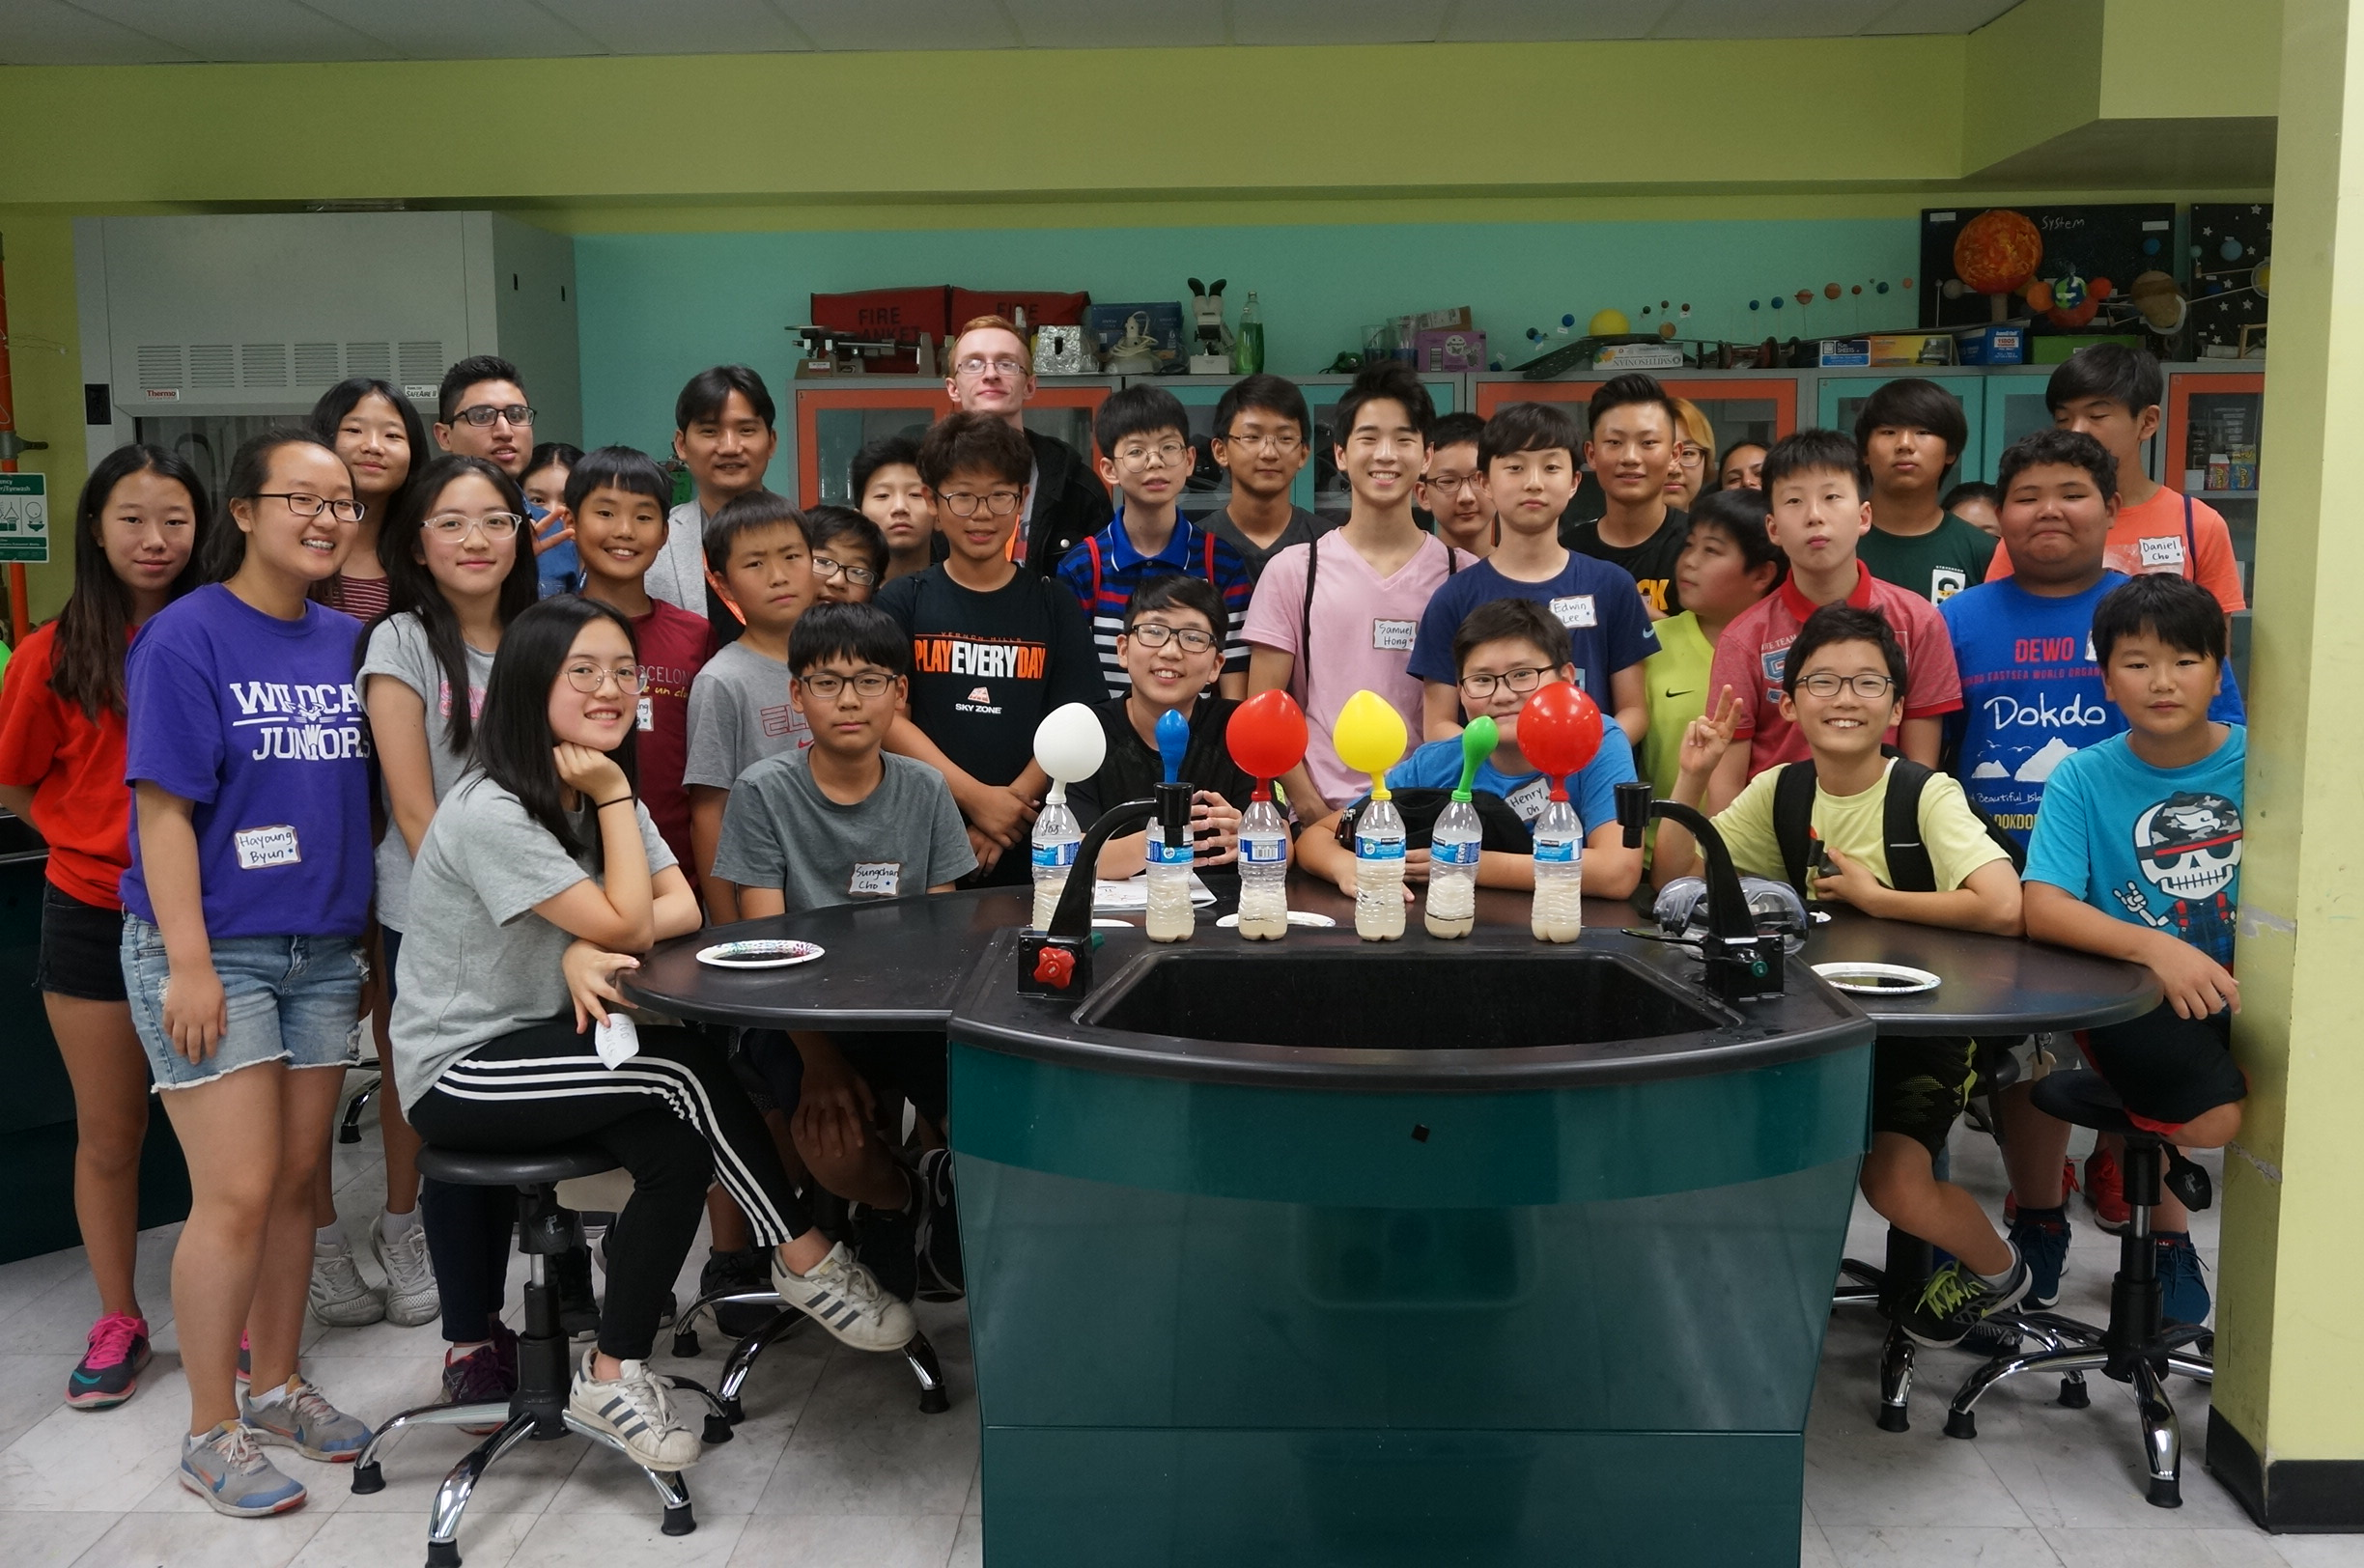 7th Youth Summer Science Camp - July 24 - 26, 2019Science Academy of Chicago